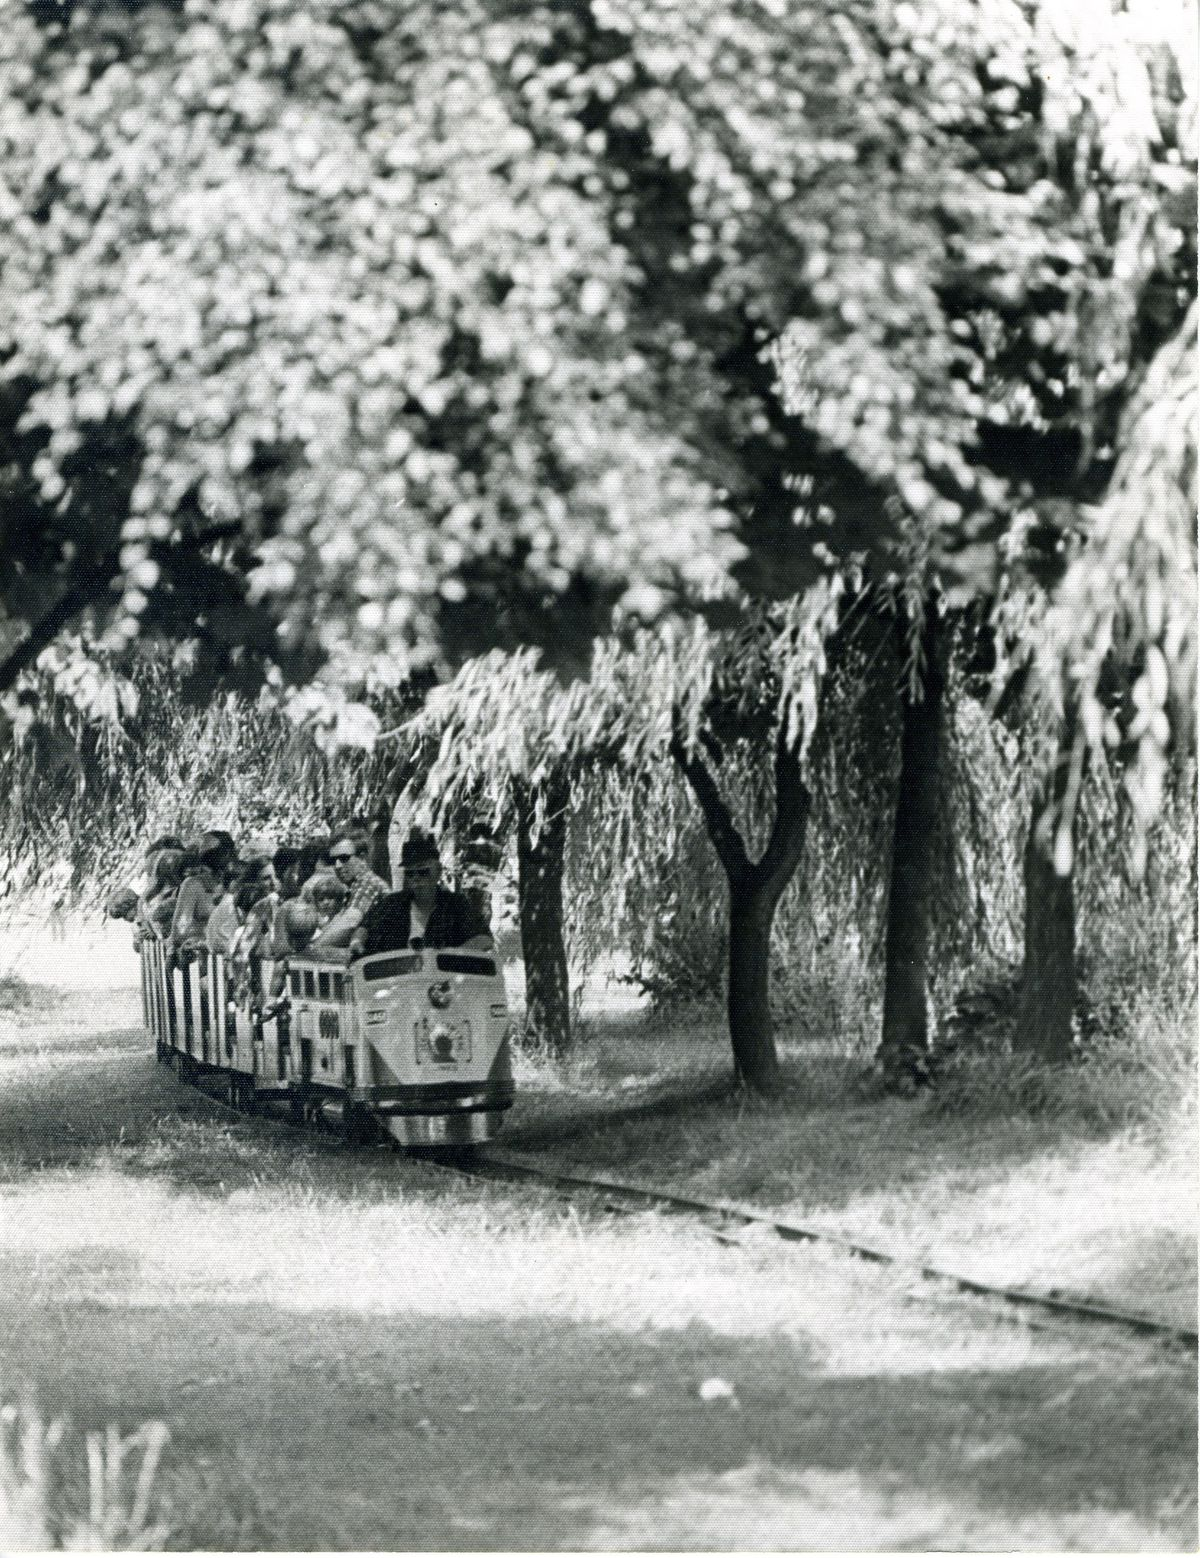 The Drayton Manor train riding through the trees in 1960